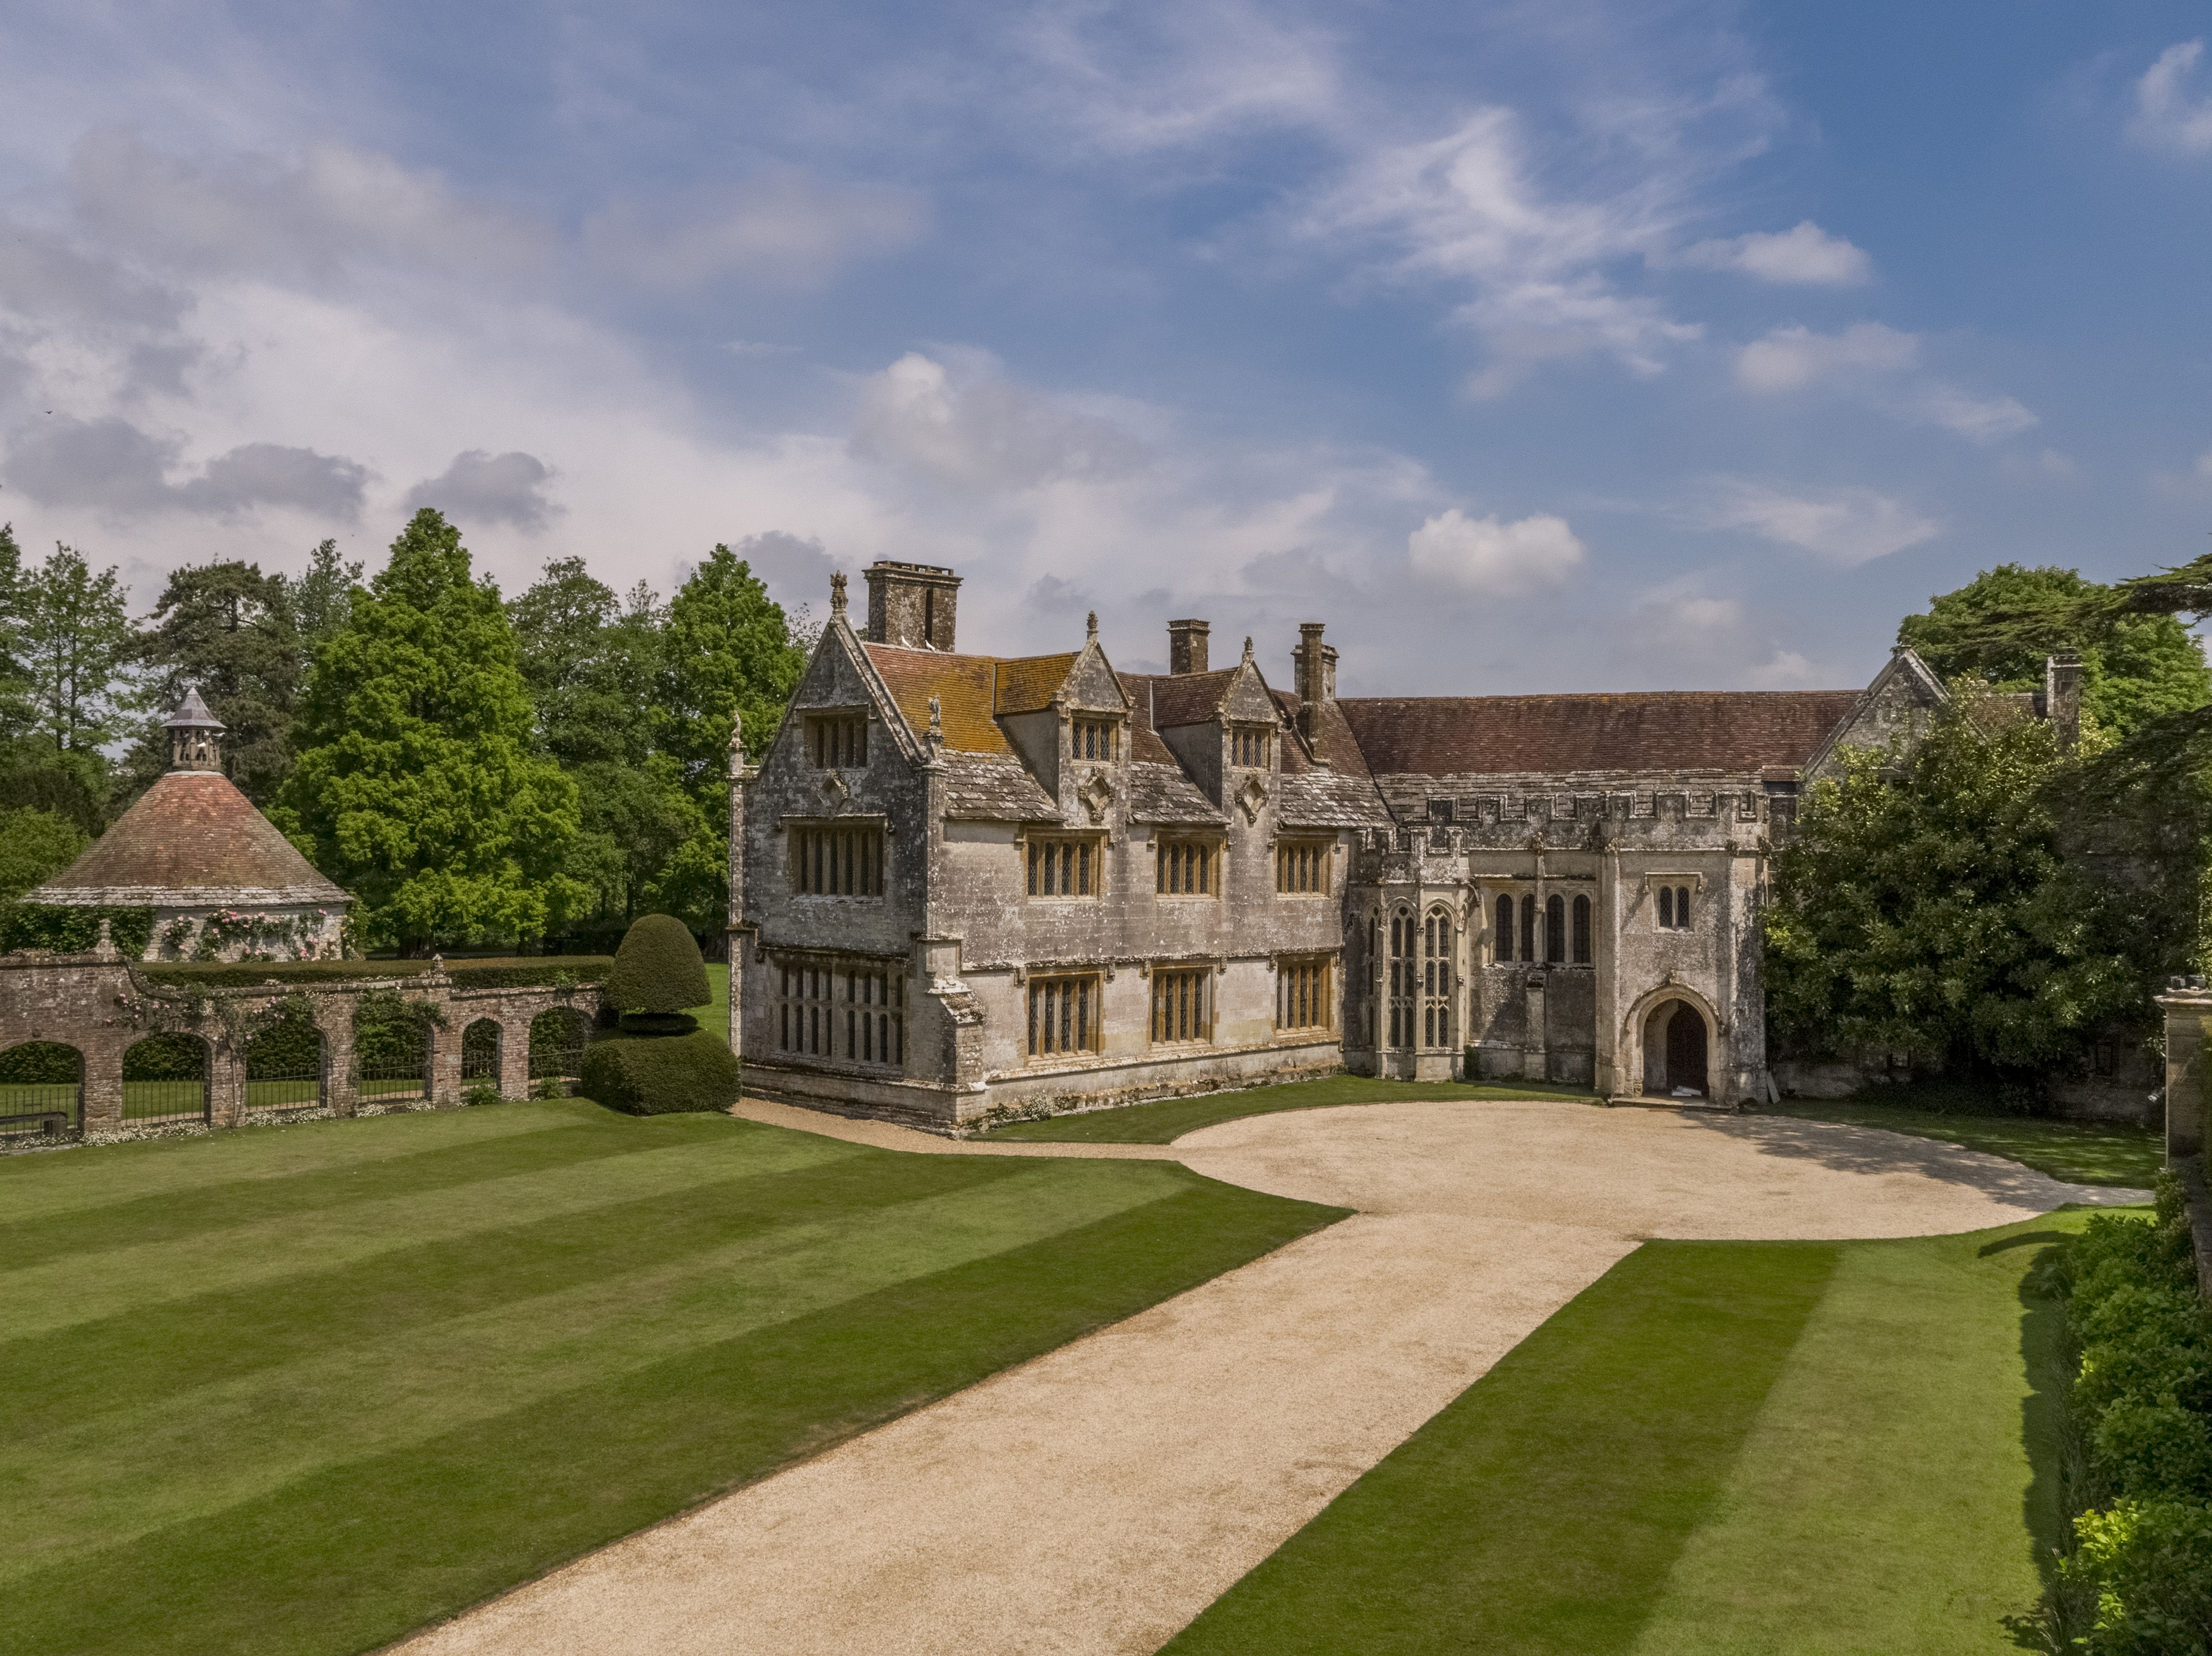 A Tudor manor house in Dorset much loved by Thomas Hardy